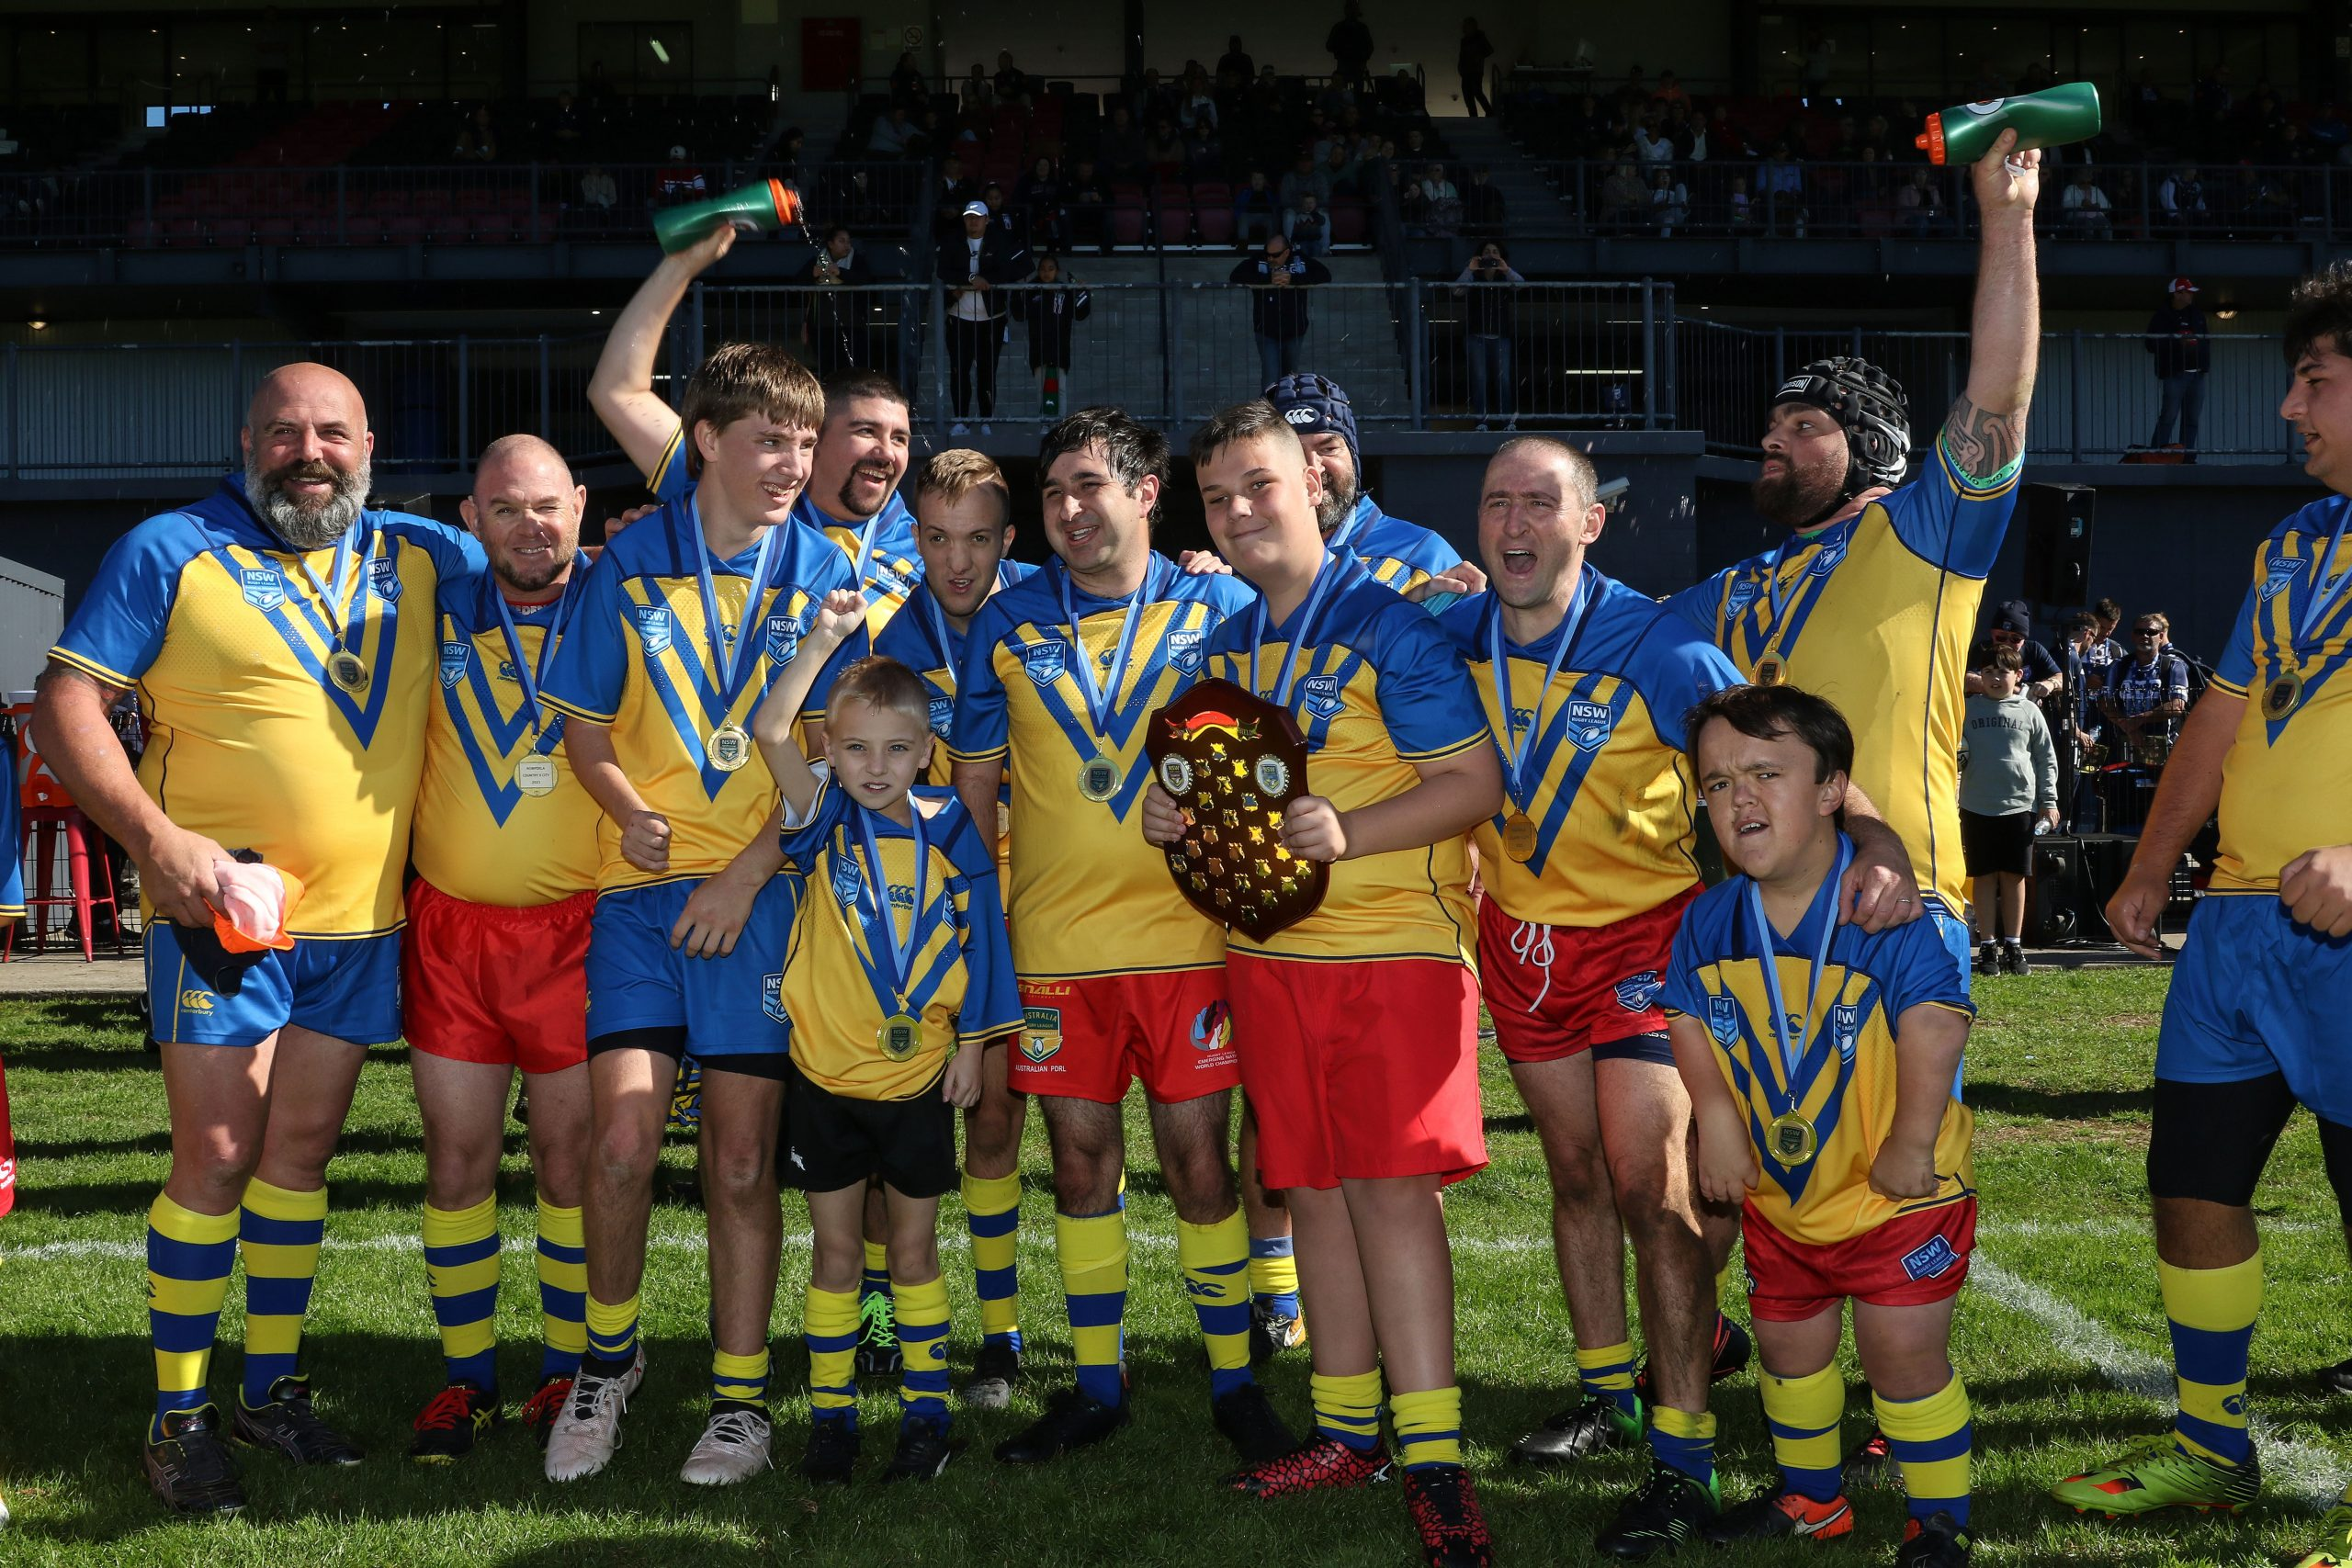 City claim honours in Physical Disability match